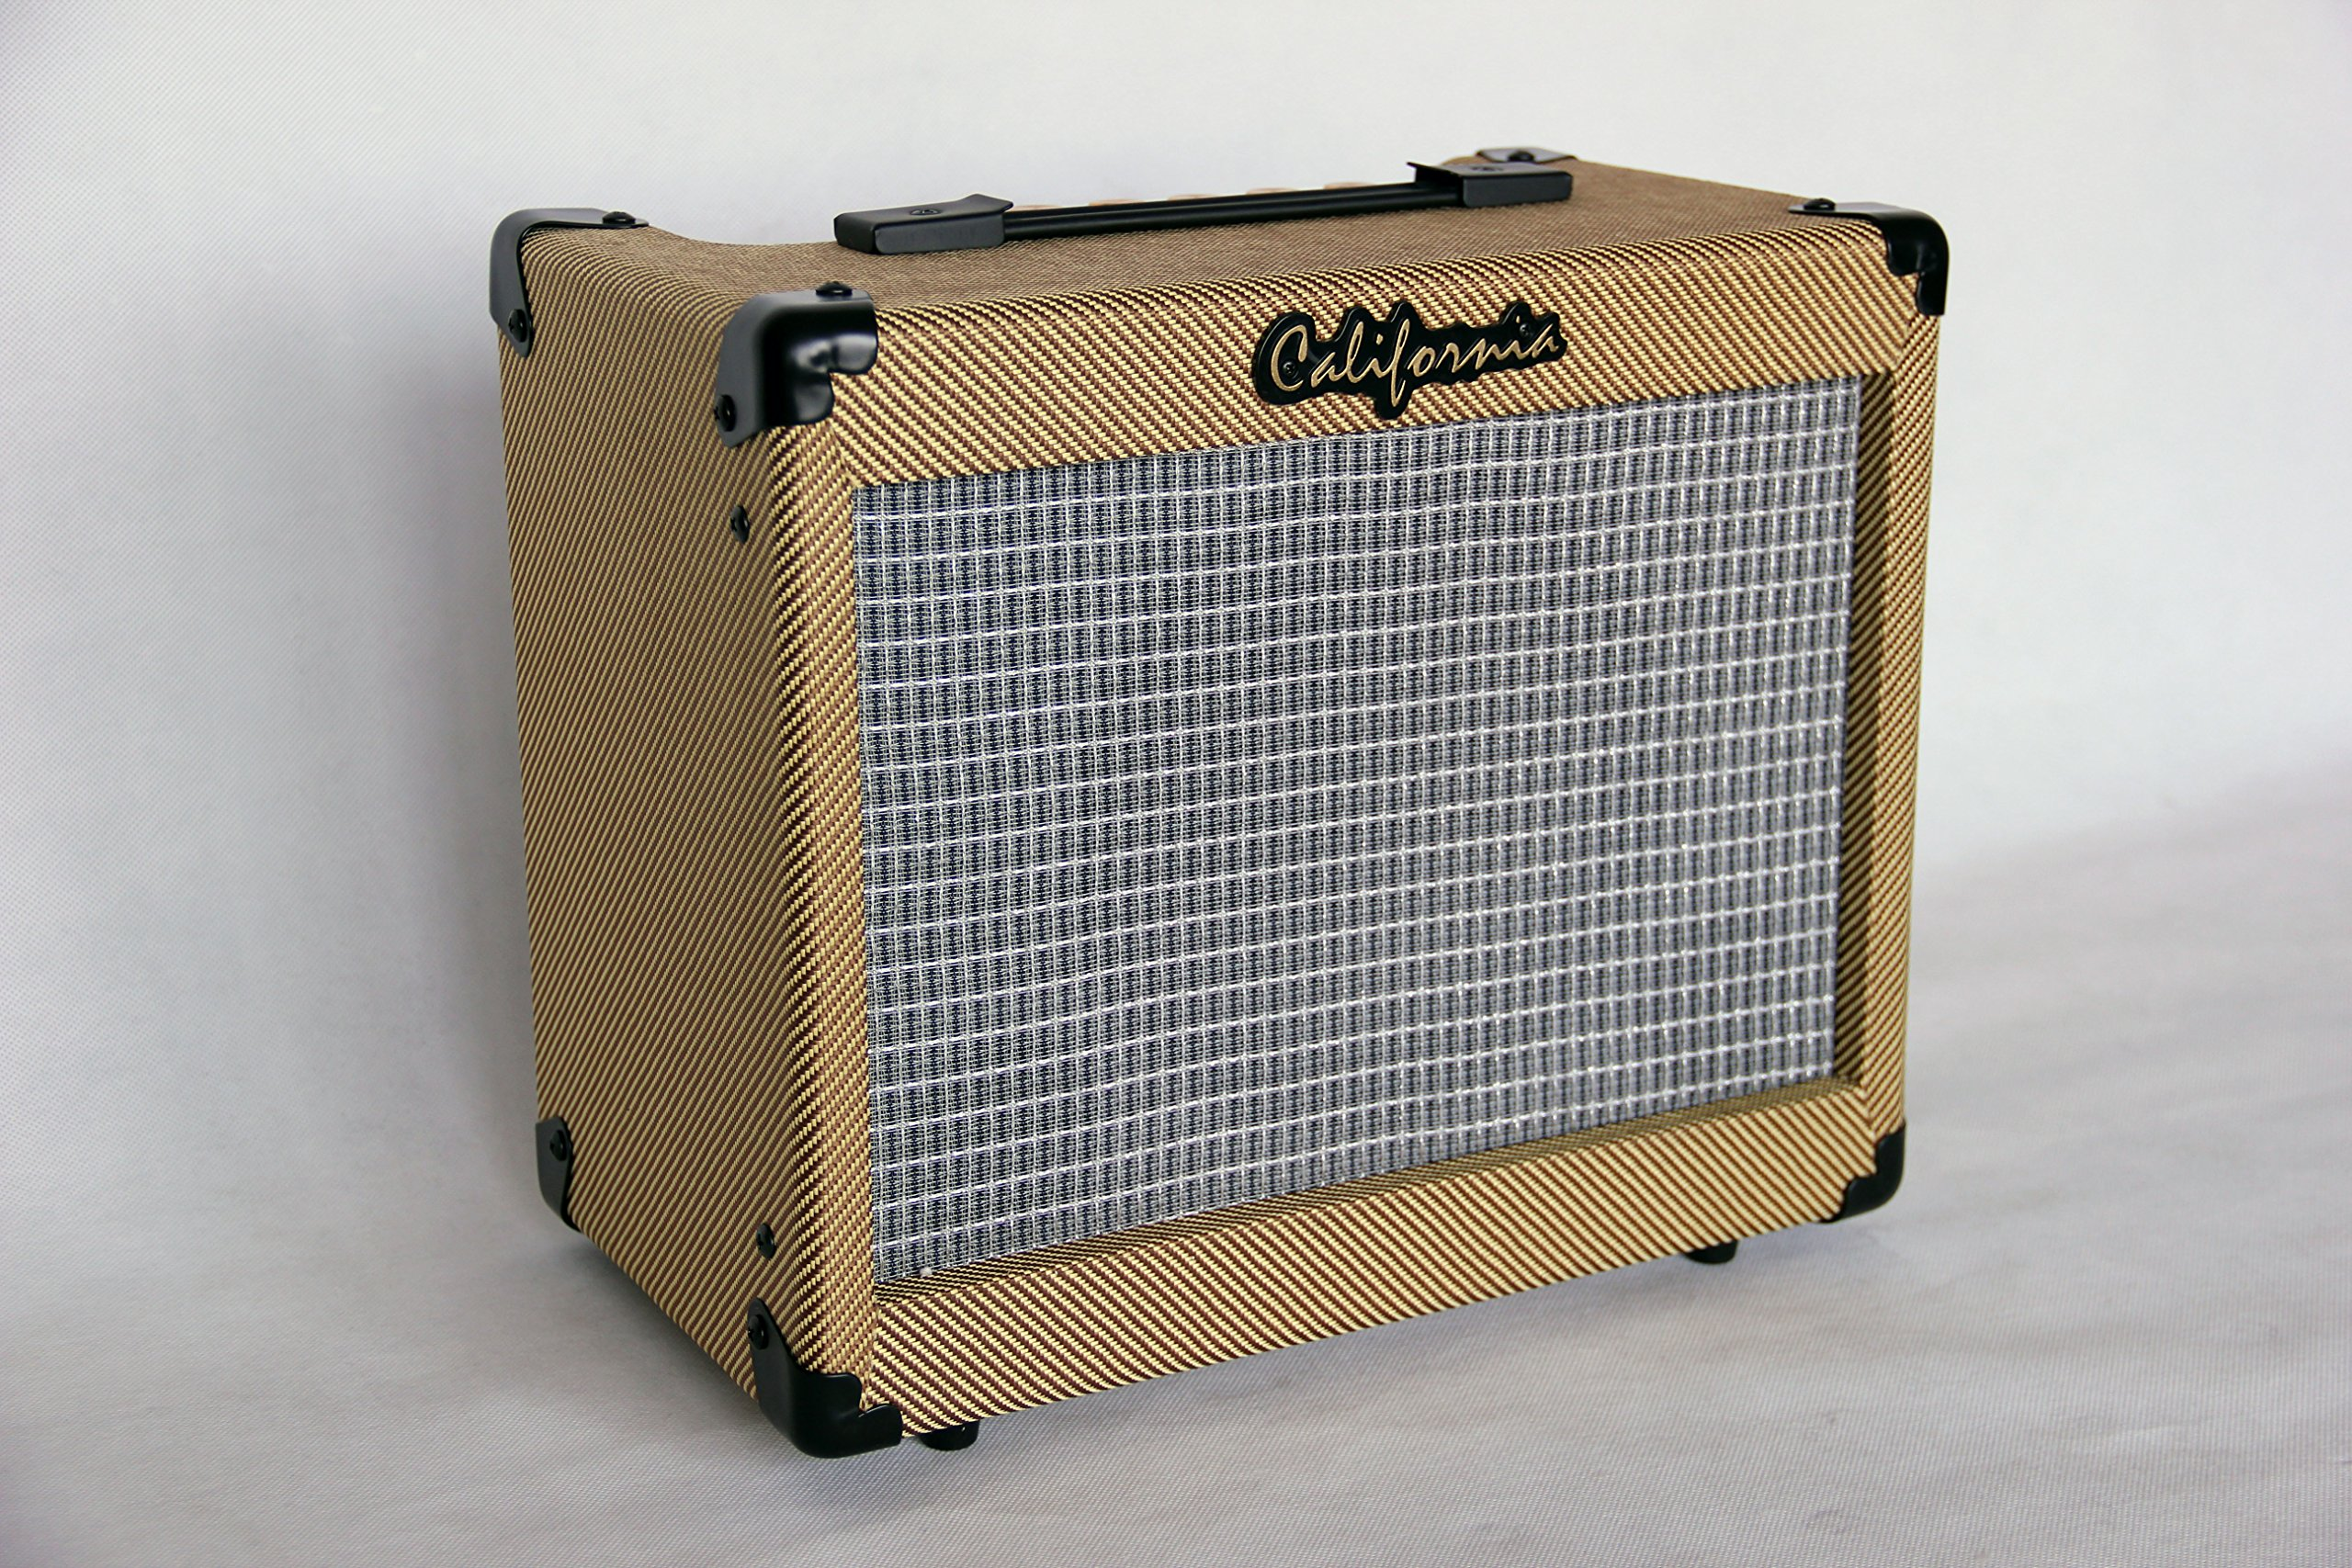 California Chorus Acoustic Guitar Amp 15 Watts by California